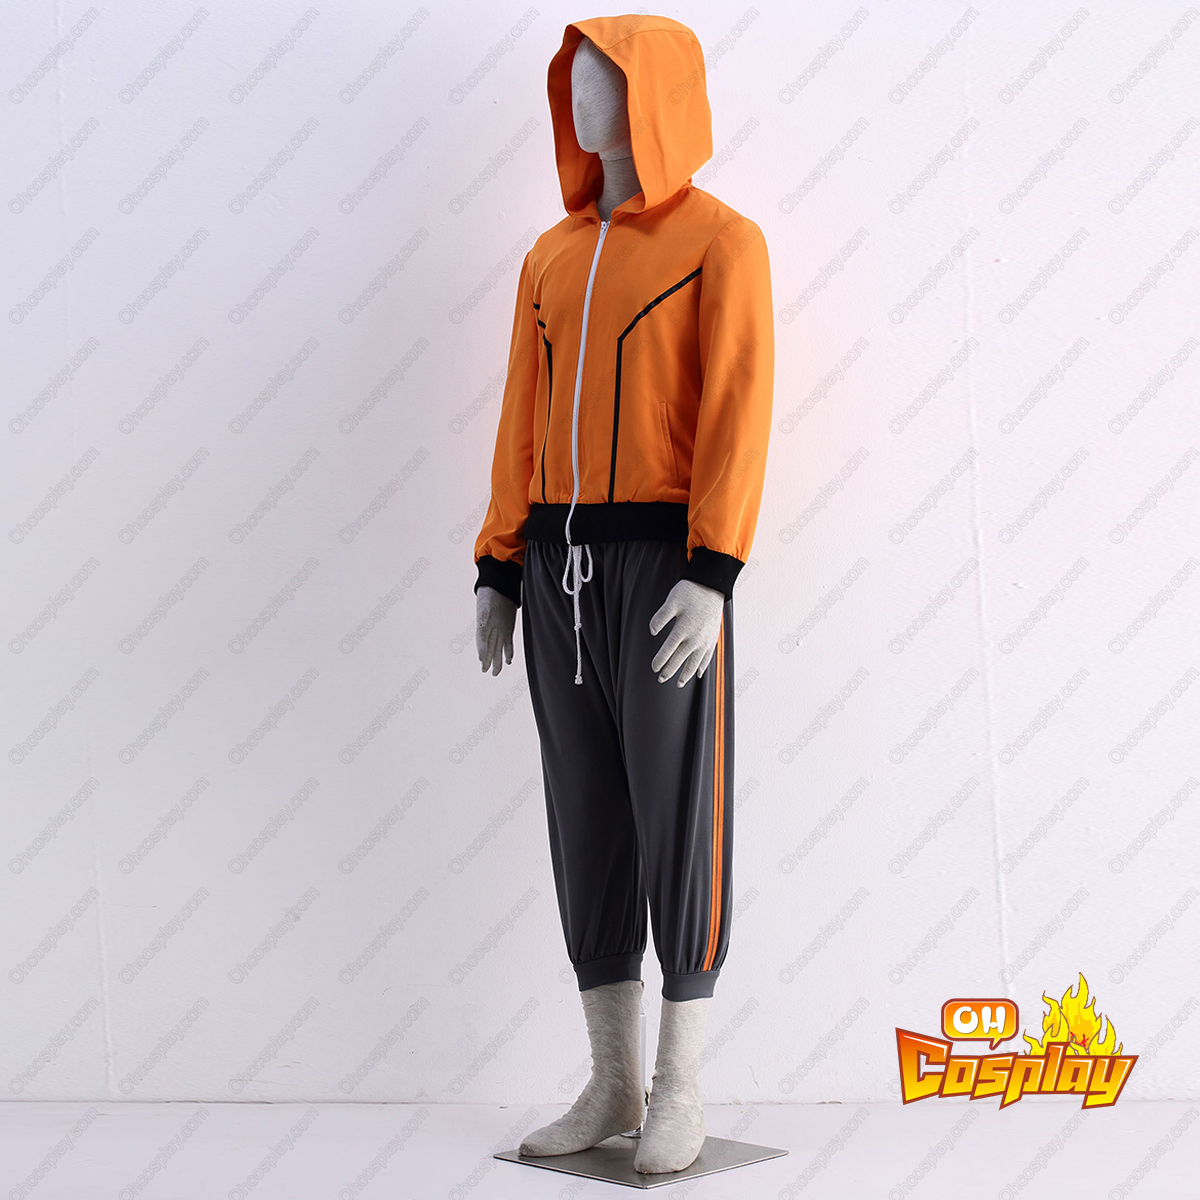 Naruto The Last Naruto 9TH Cosplay Costumes Deluxe Edition